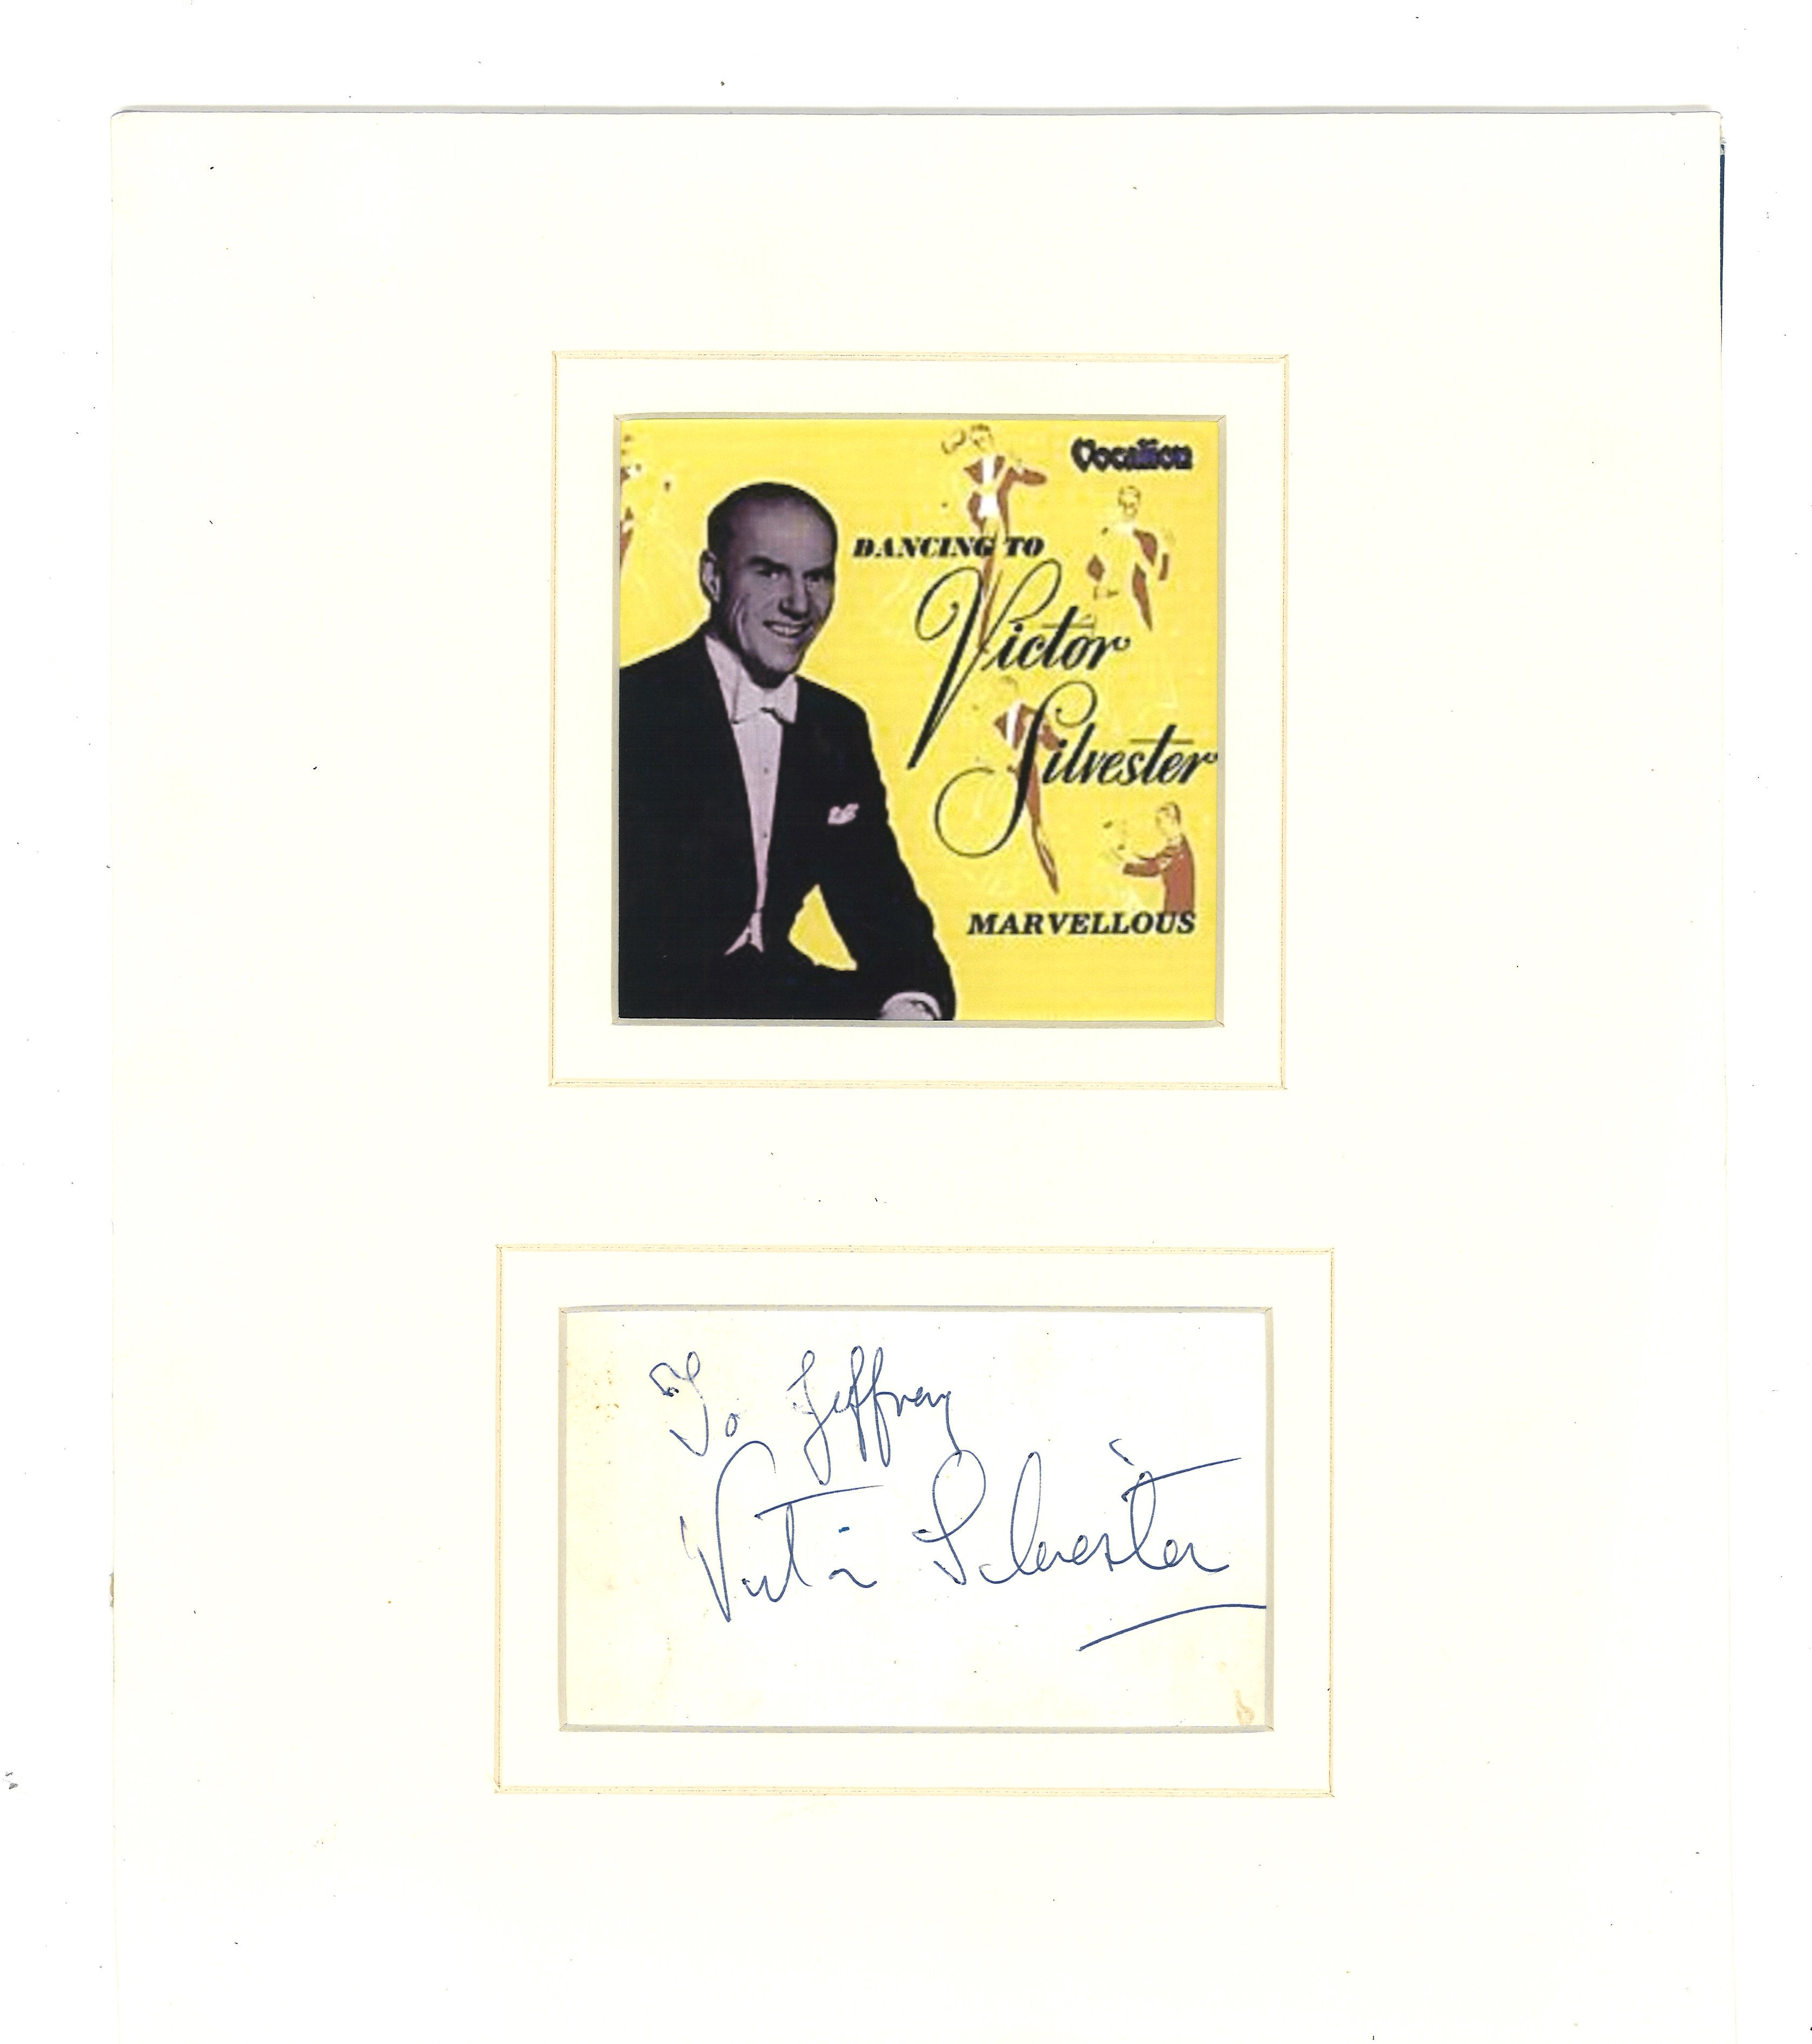 Lot 101 - Victor Silvester signature piece mounted below promo photo. (25 February 1900[1] 14 August 1978) was